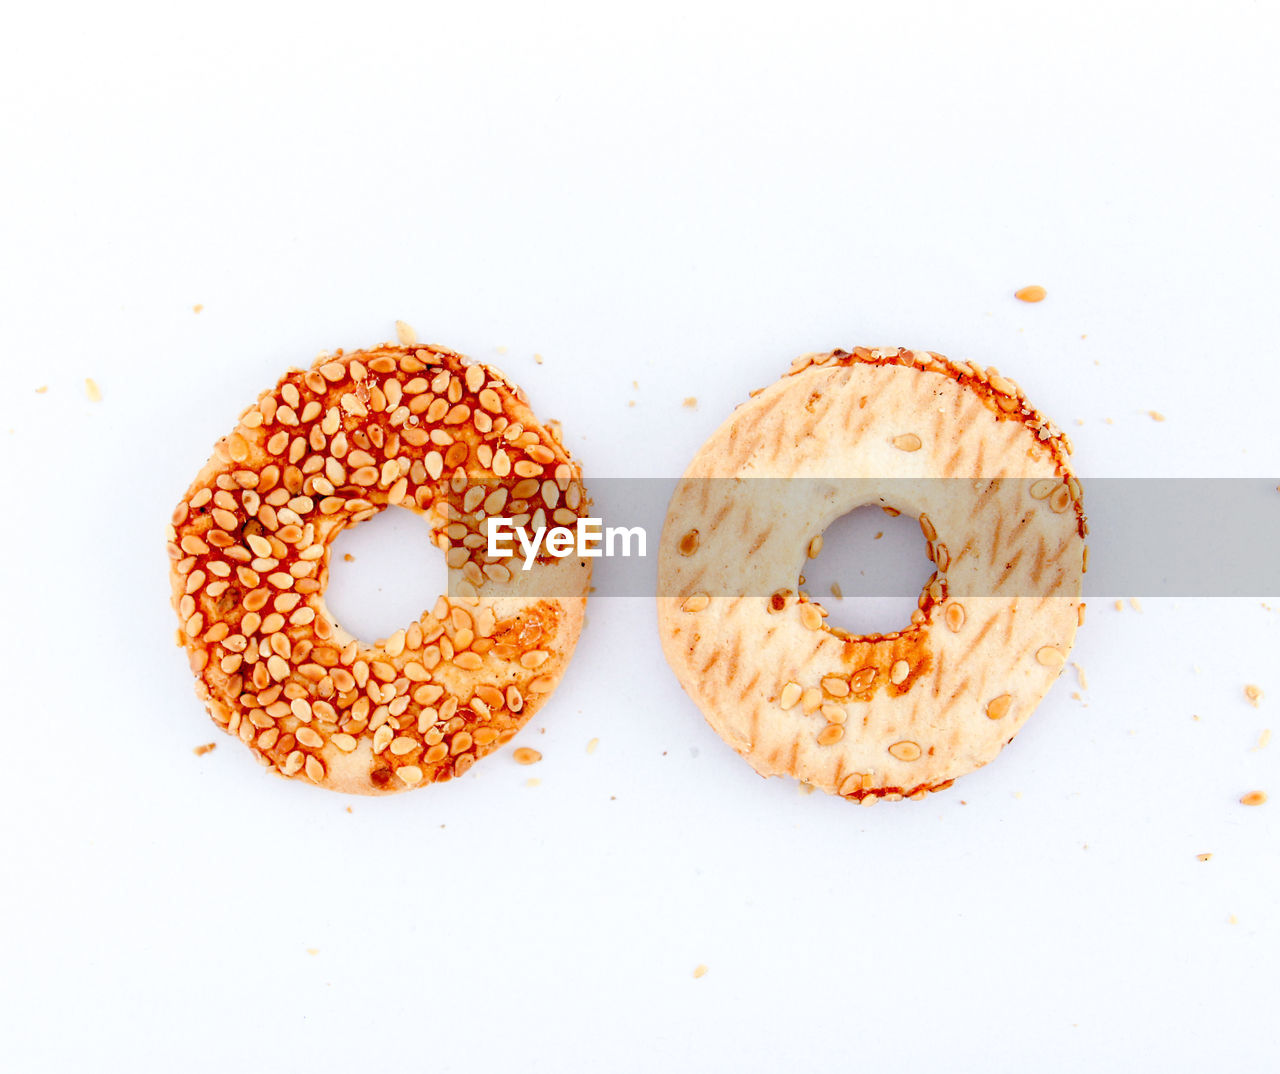 food, white background, food and drink, studio shot, indulgence, ready-to-eat, no people, plate, temptation, sweet food, close-up, freshness, indoors, day